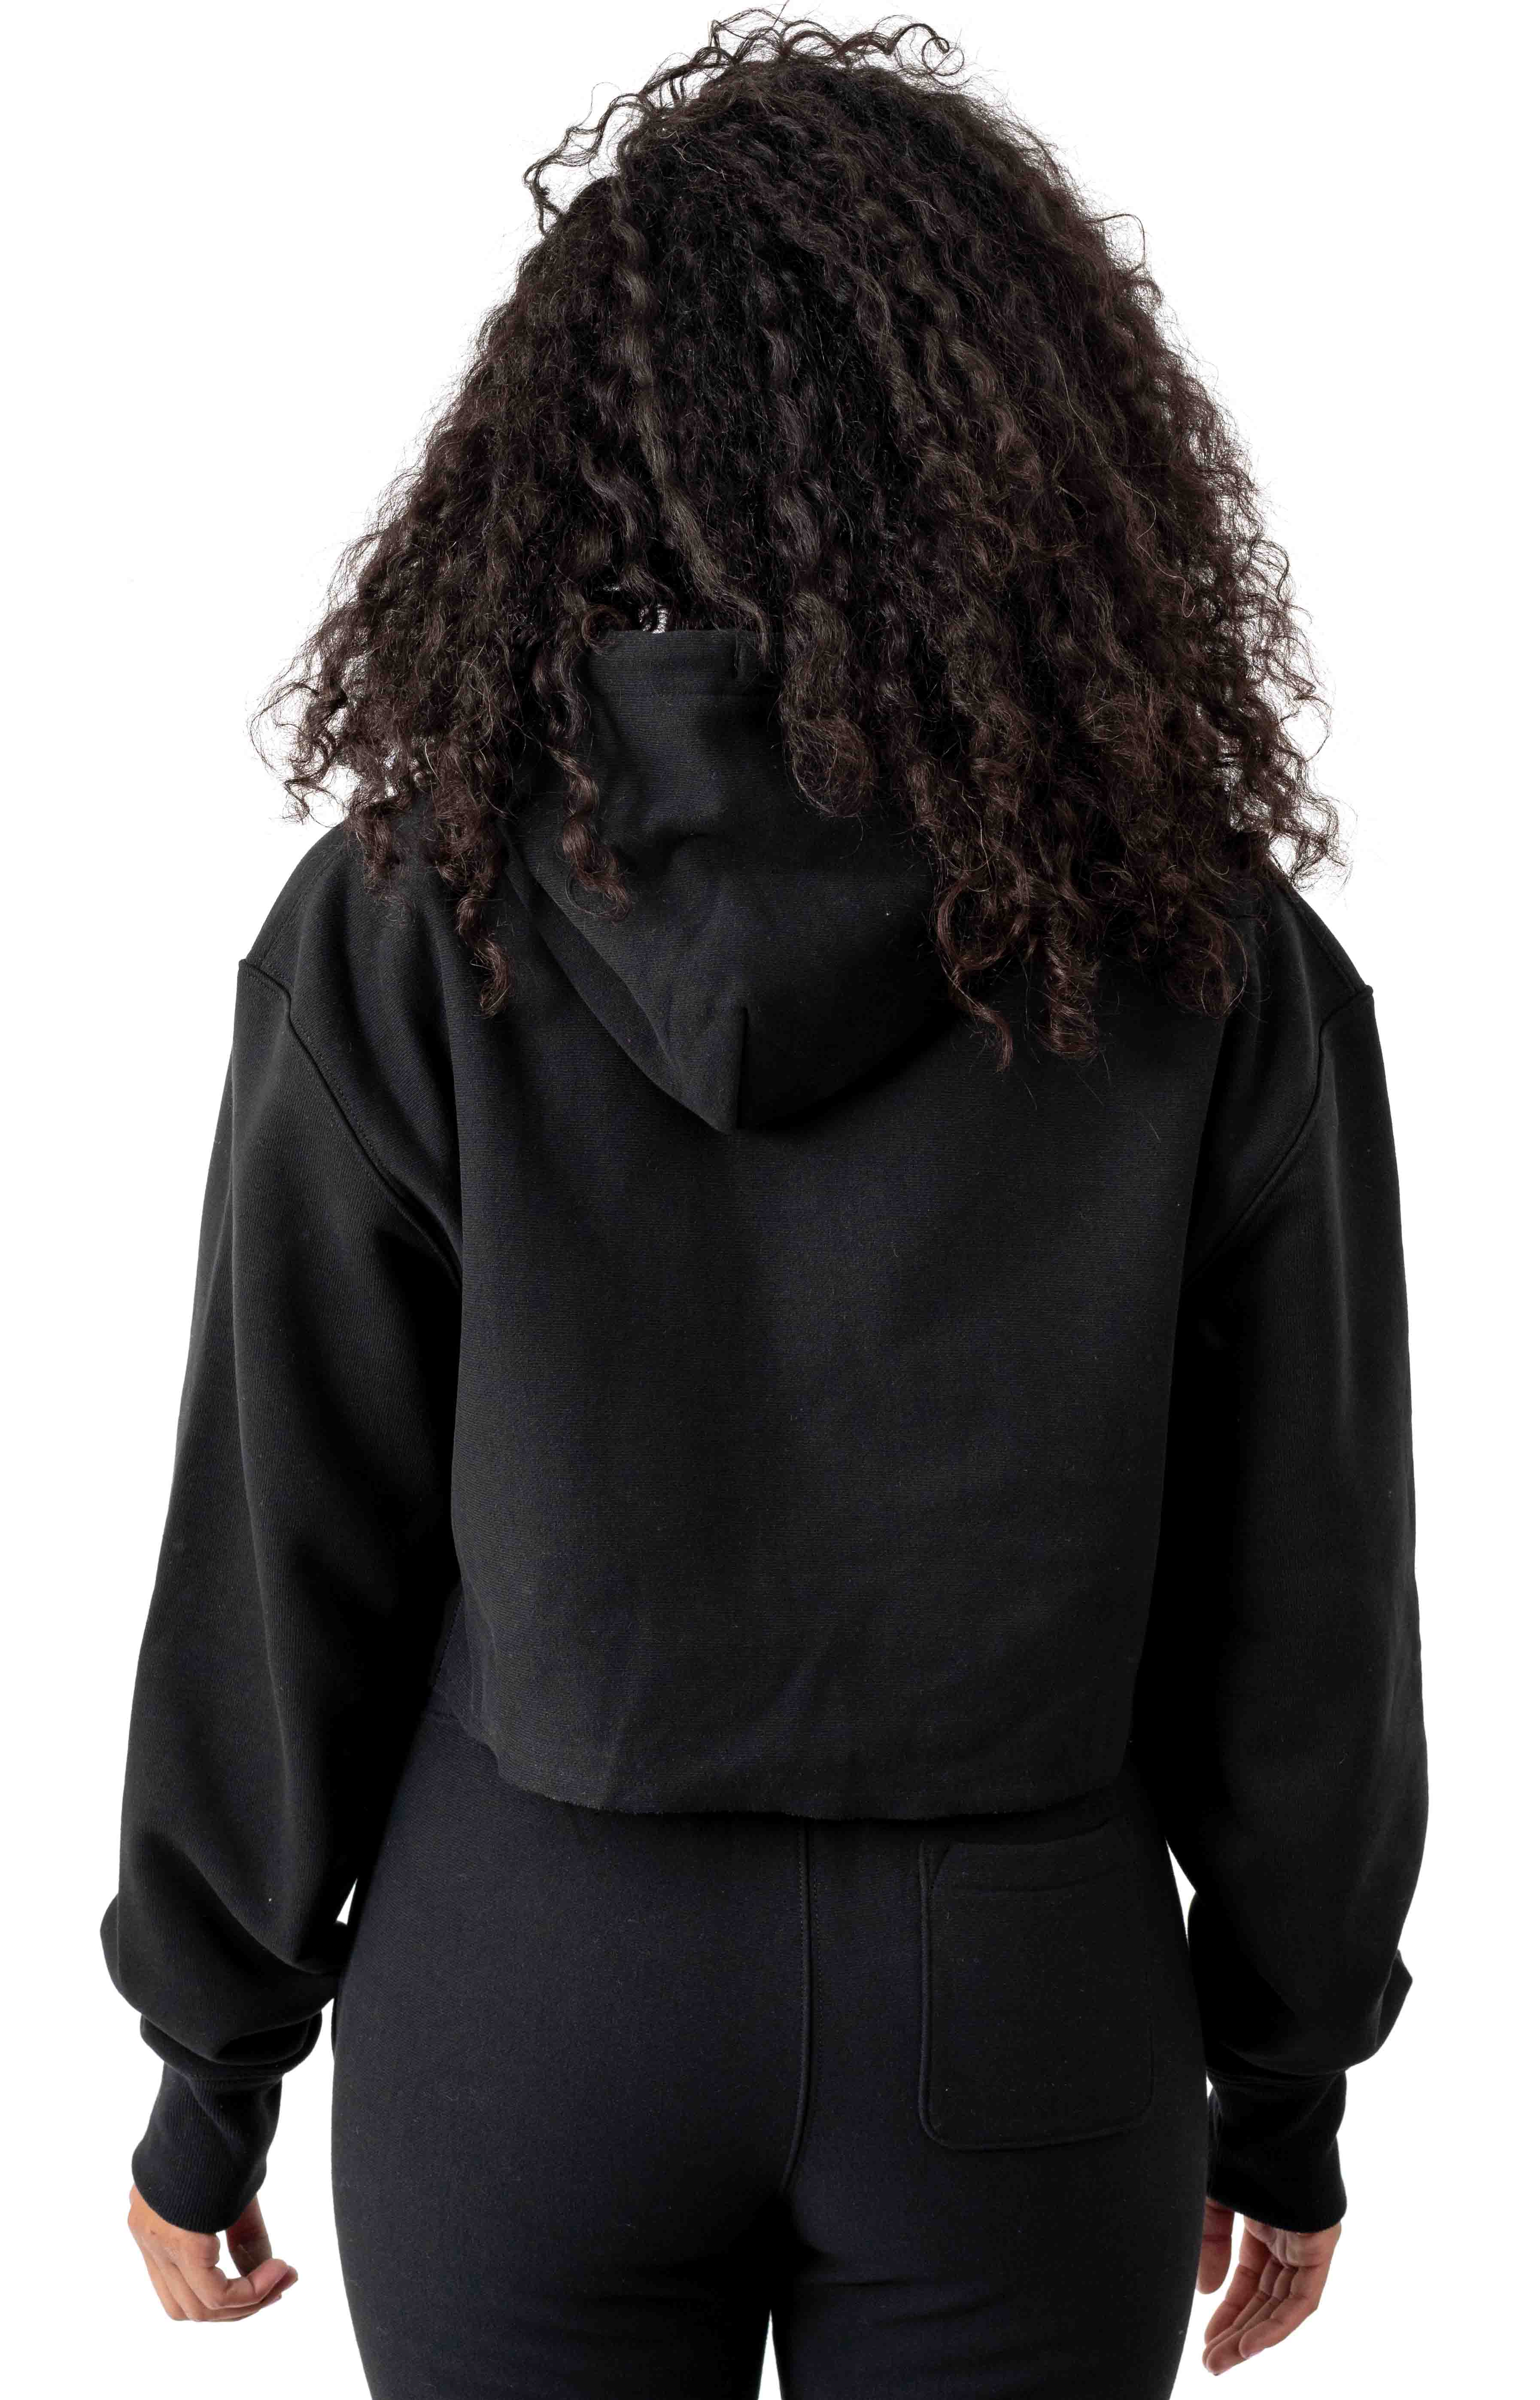 Reverse Weave Old English Lettering Cropped Cutoff Pullover Hoodie - Black 3